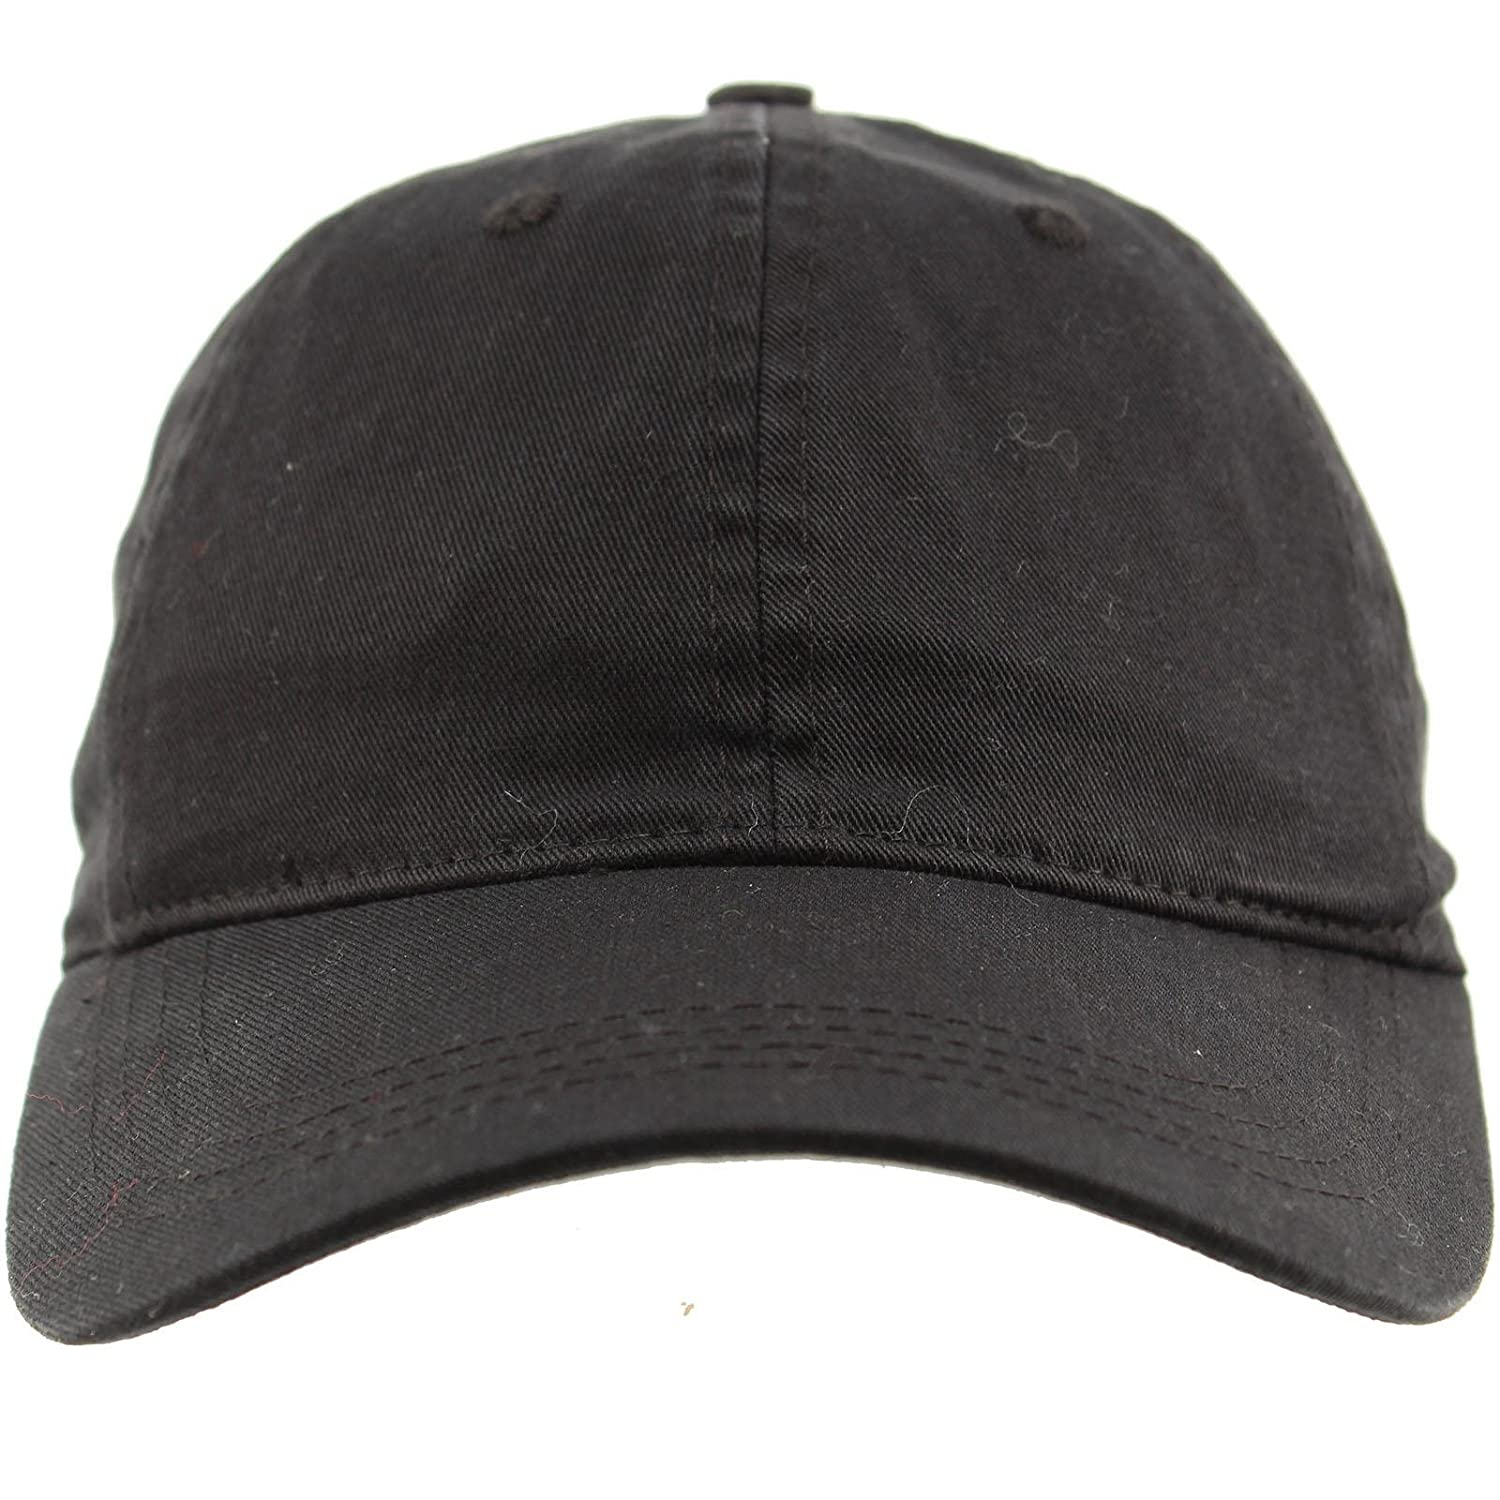 Everyday Unisex Cotton Dad Hat Plain Blank Baseball Adjustable Ball Cap  Black at Amazon Men s Clothing store  7a854287ab2d